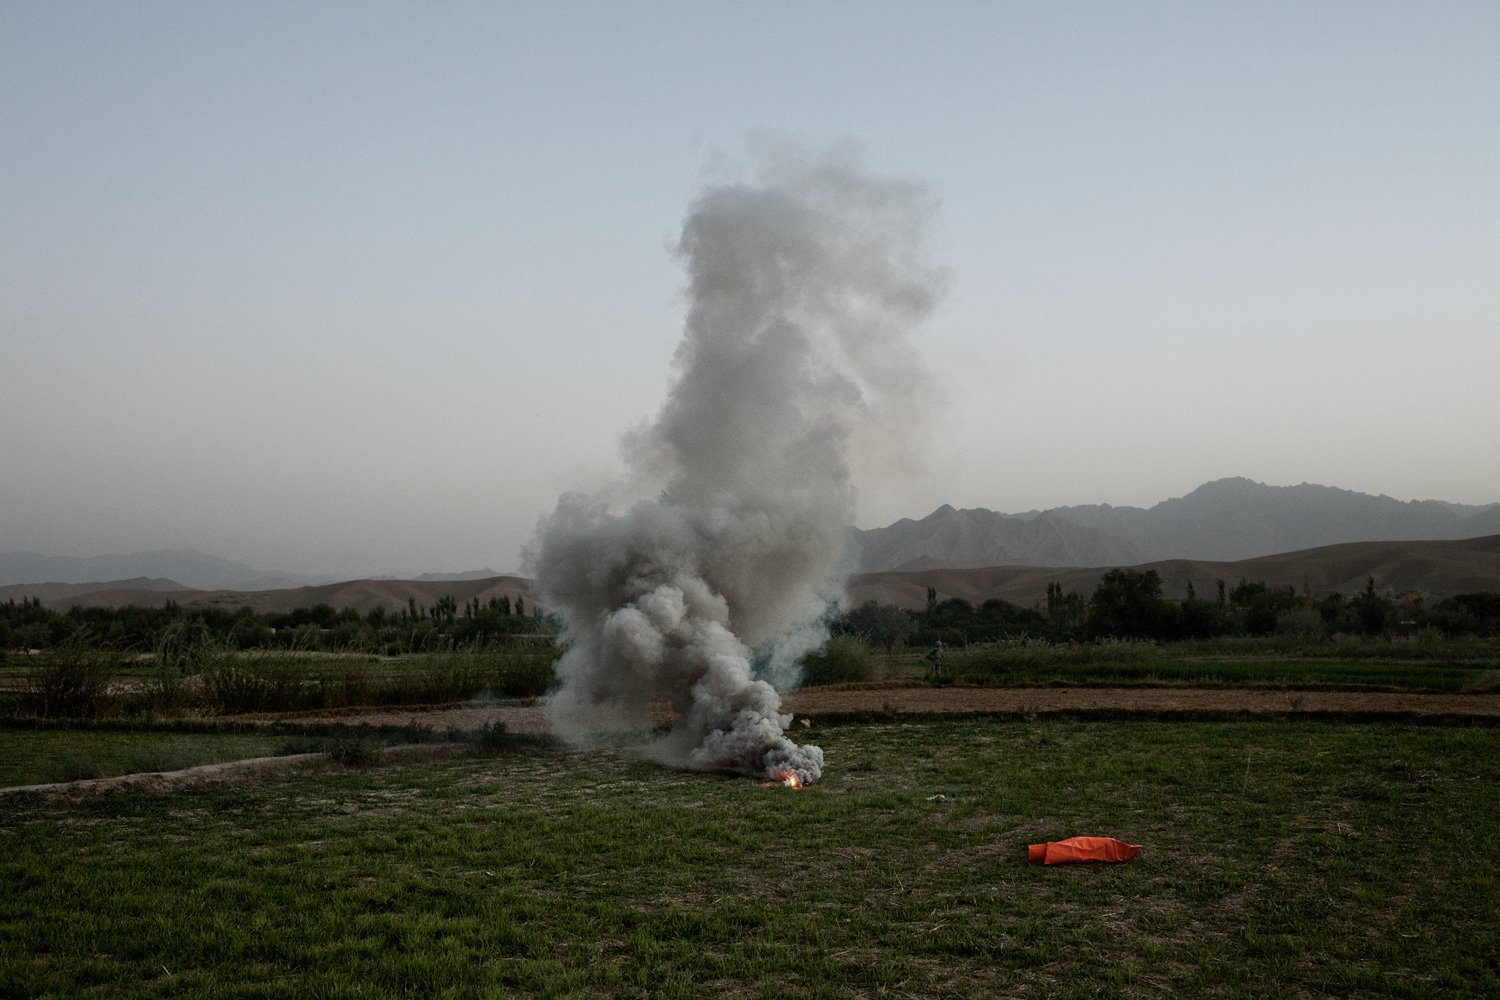 A flare marks a landing zone for medical evacuation helicopters after three U.S. Army Soldiers were injured in an improvised explosive device attack in the Tangi Valley, Wardak Province,Afghanistan.